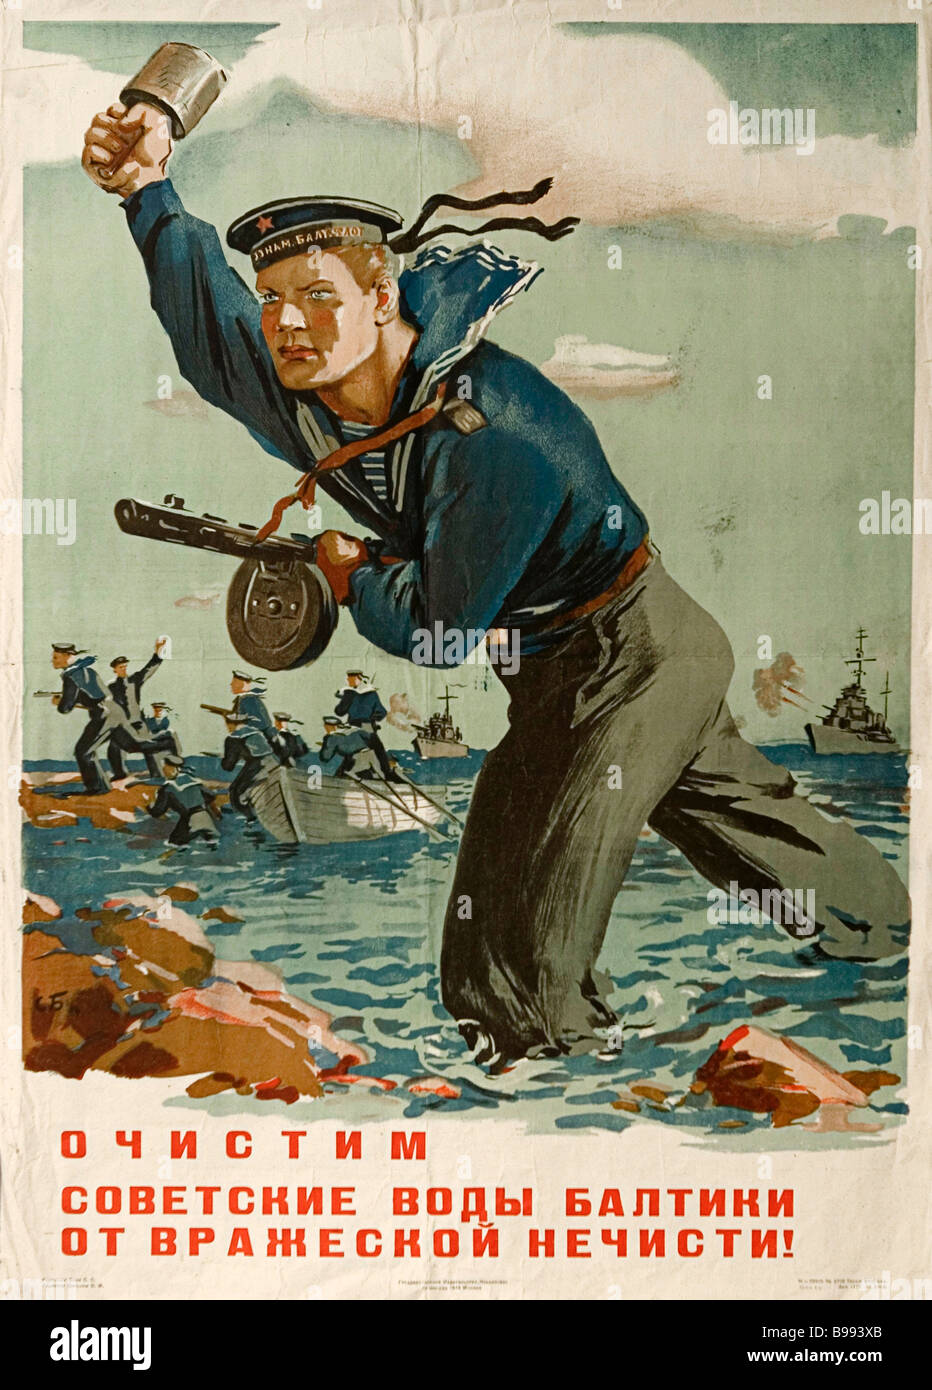 Let s Clear Soviet Baltic Waters from Monstrous Enemies A poster by Solomon Boim 1944 - Stock Image